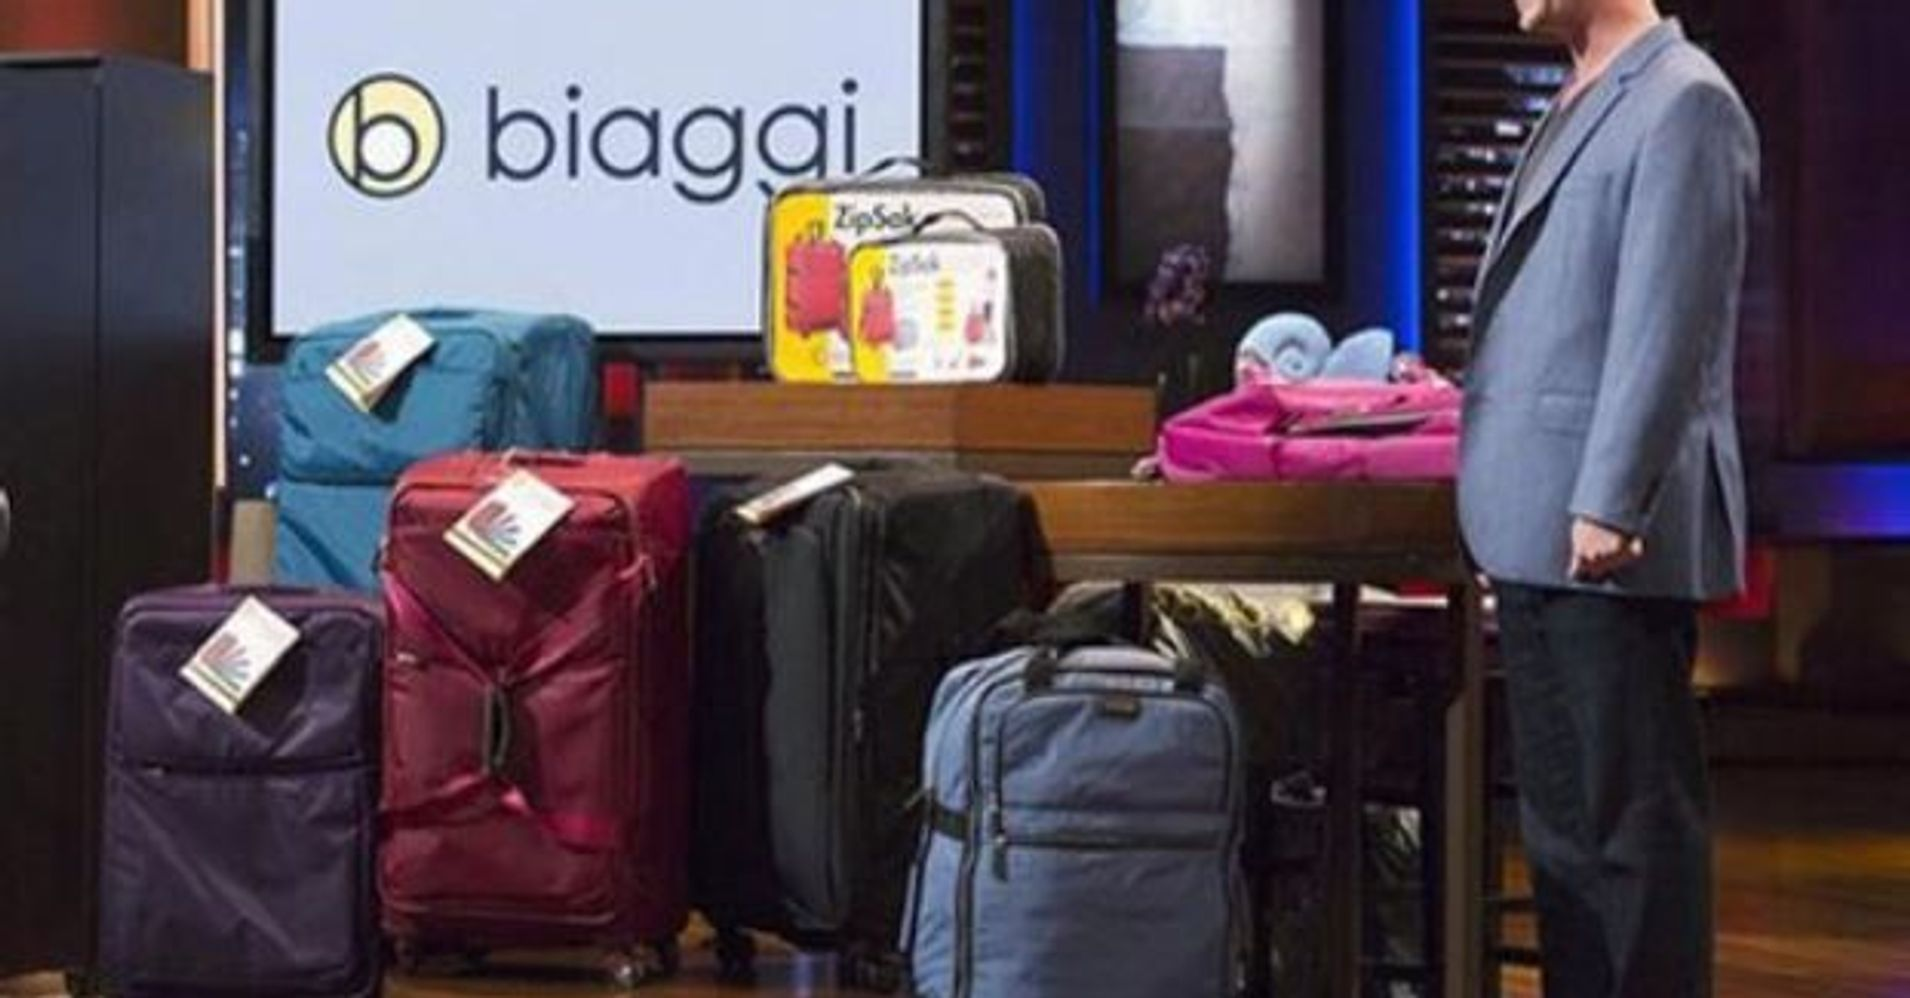 Shark Tank Biaggi Entrepreneur Stephen Hersh Bags Beyond The Huffpost